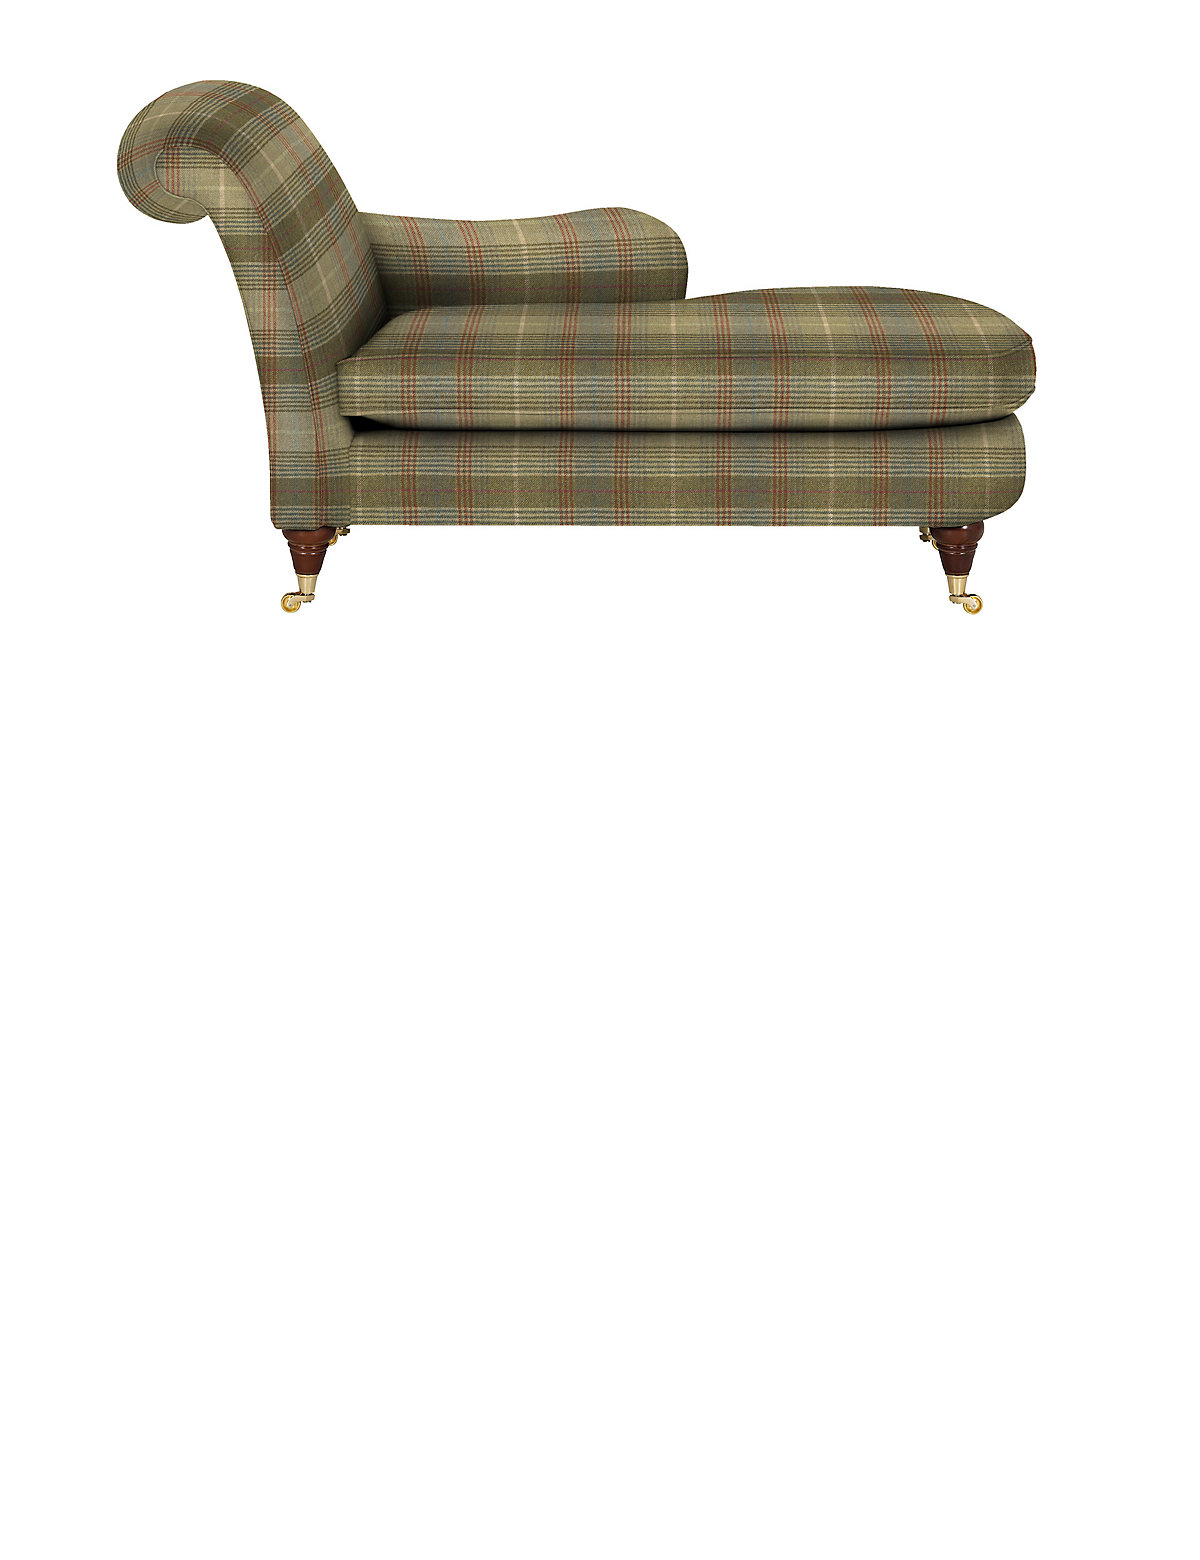 Marks spencer catalogue chairs from marks spencer at mycatalogu - Chaise classique design ...